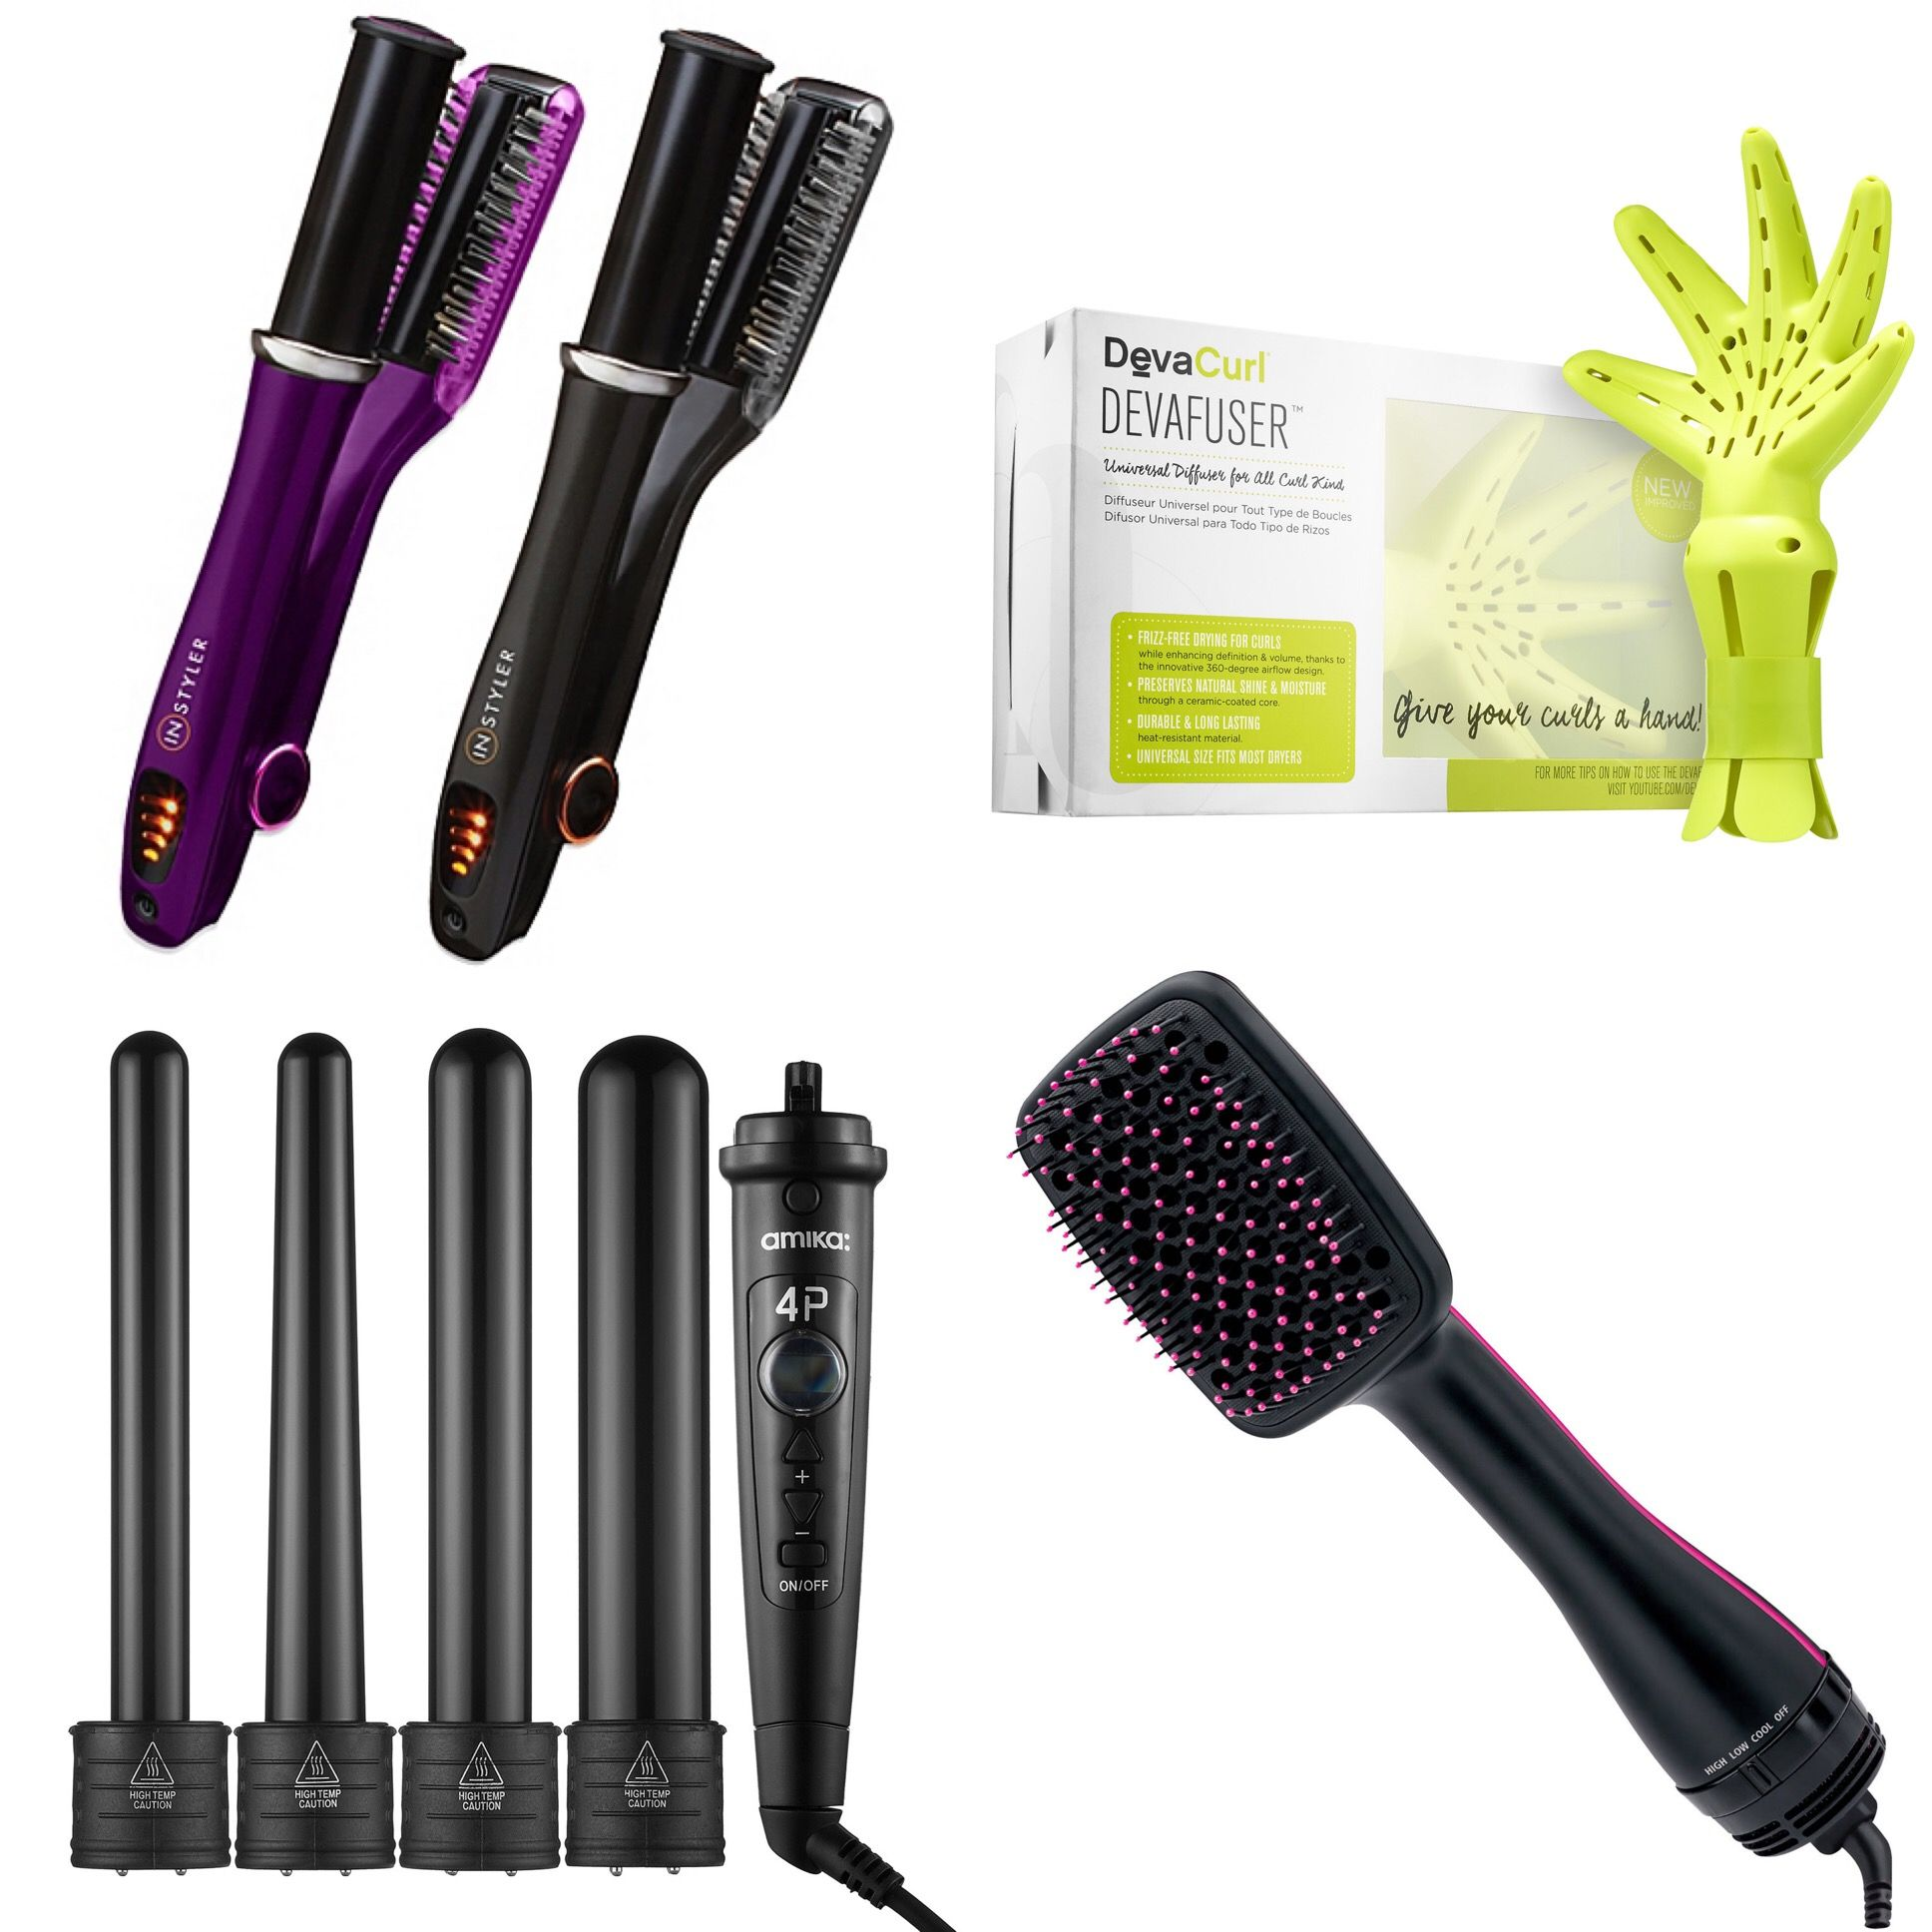 10 Hair Styling Tools That Will Revolutionize The Way You Do Your Hair Hair Tools Hair Hair Styles